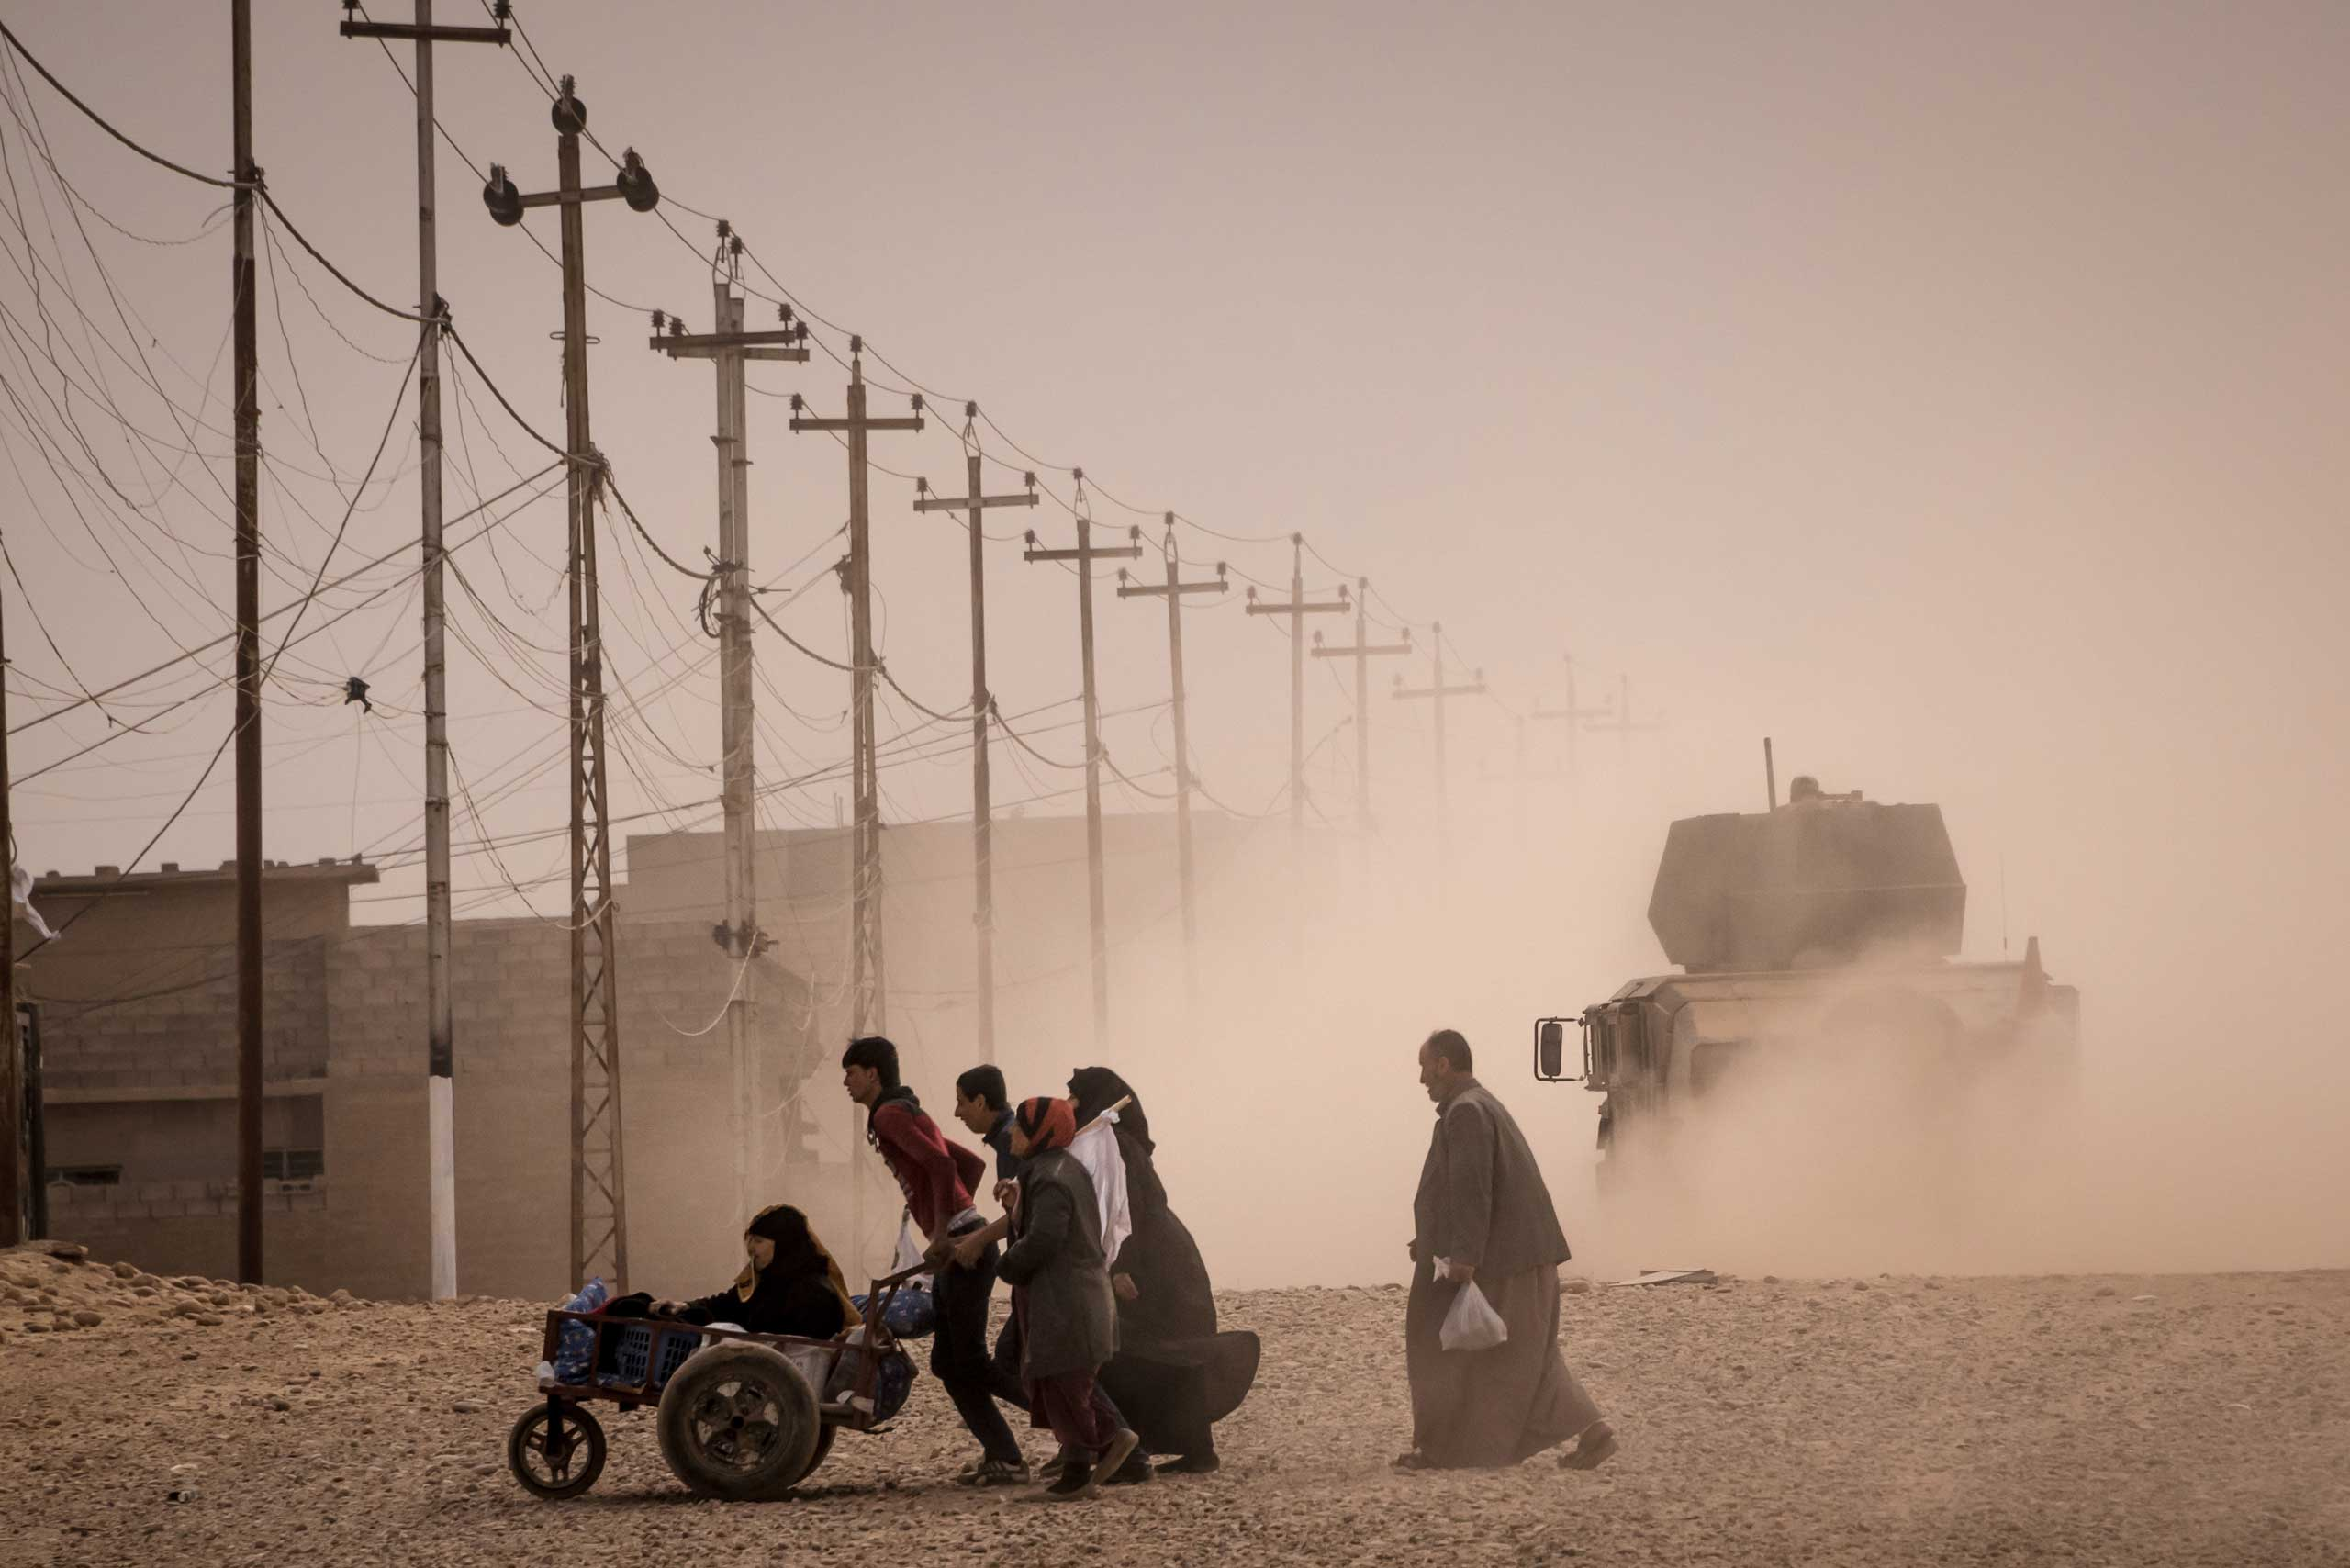 Residents of Mosul flee the city amid fighting between Iraqi forces and the Islamic State in Mosul, Iraq on Nov. 16, 2016.